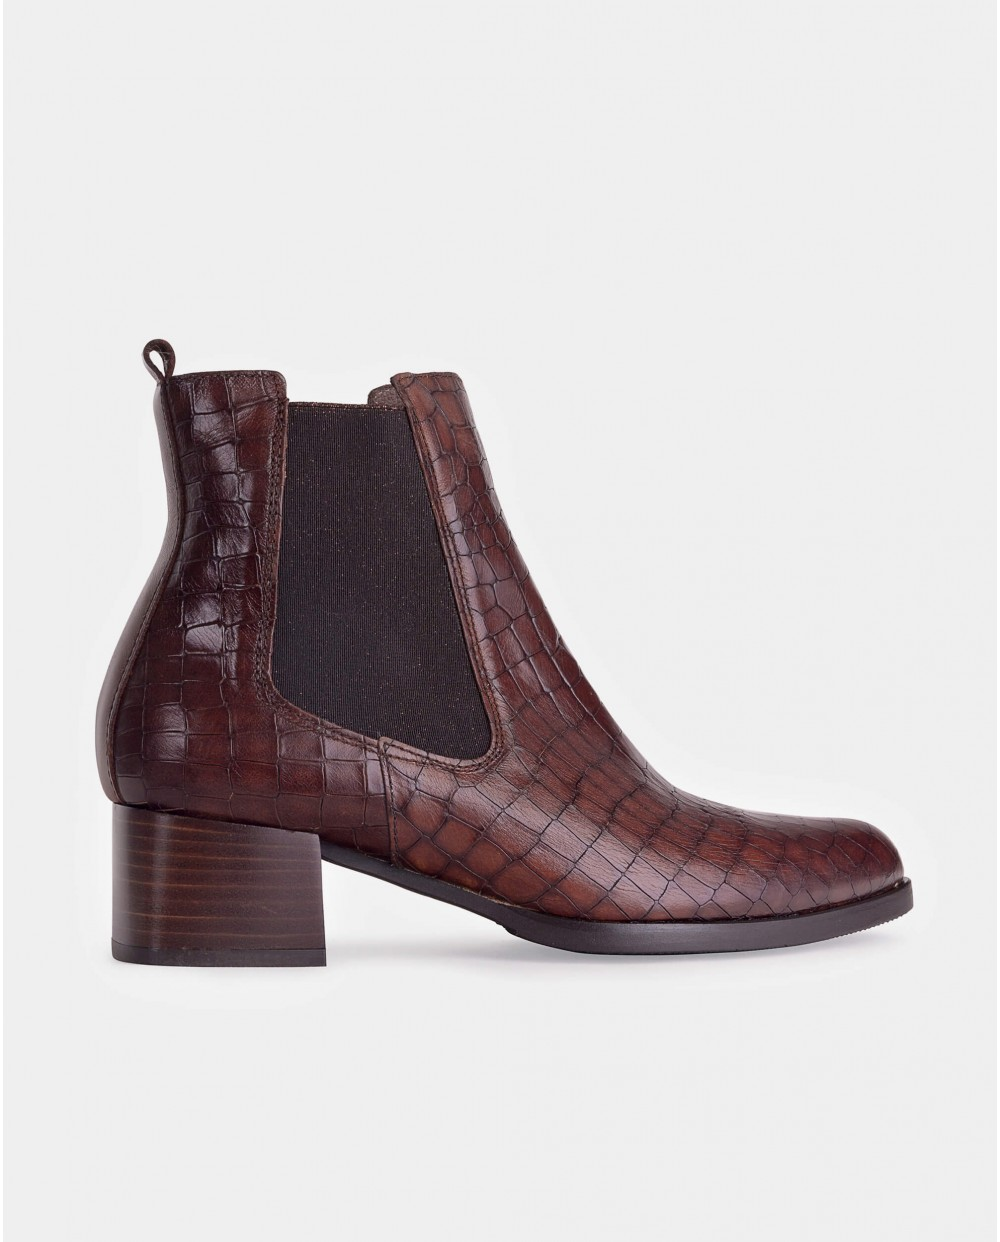 mock/croc leather ankle boot